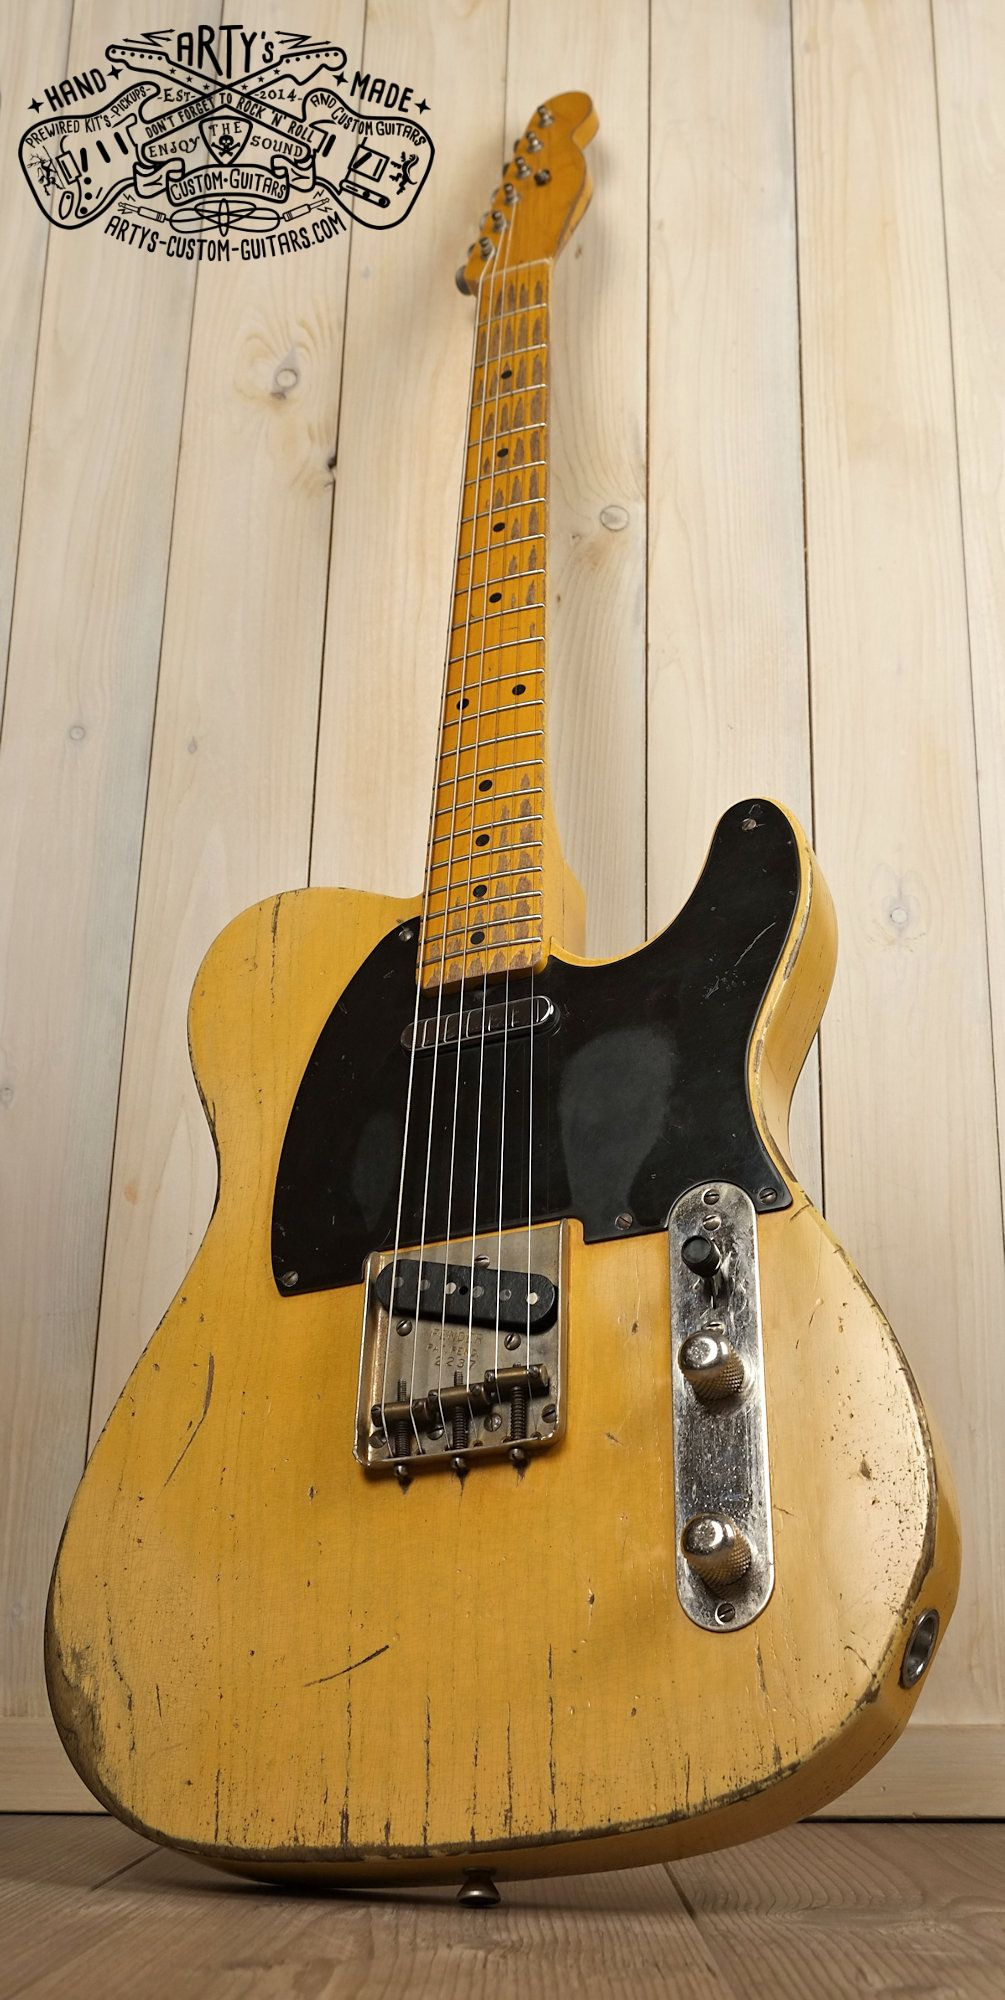 Broadcaster Butterscotch Blonde Telecaster Heavy Relic Tele Maple Best Wiring Harness For Neck Swamp Ash Body Bakelite Pickguard Aged Nitro